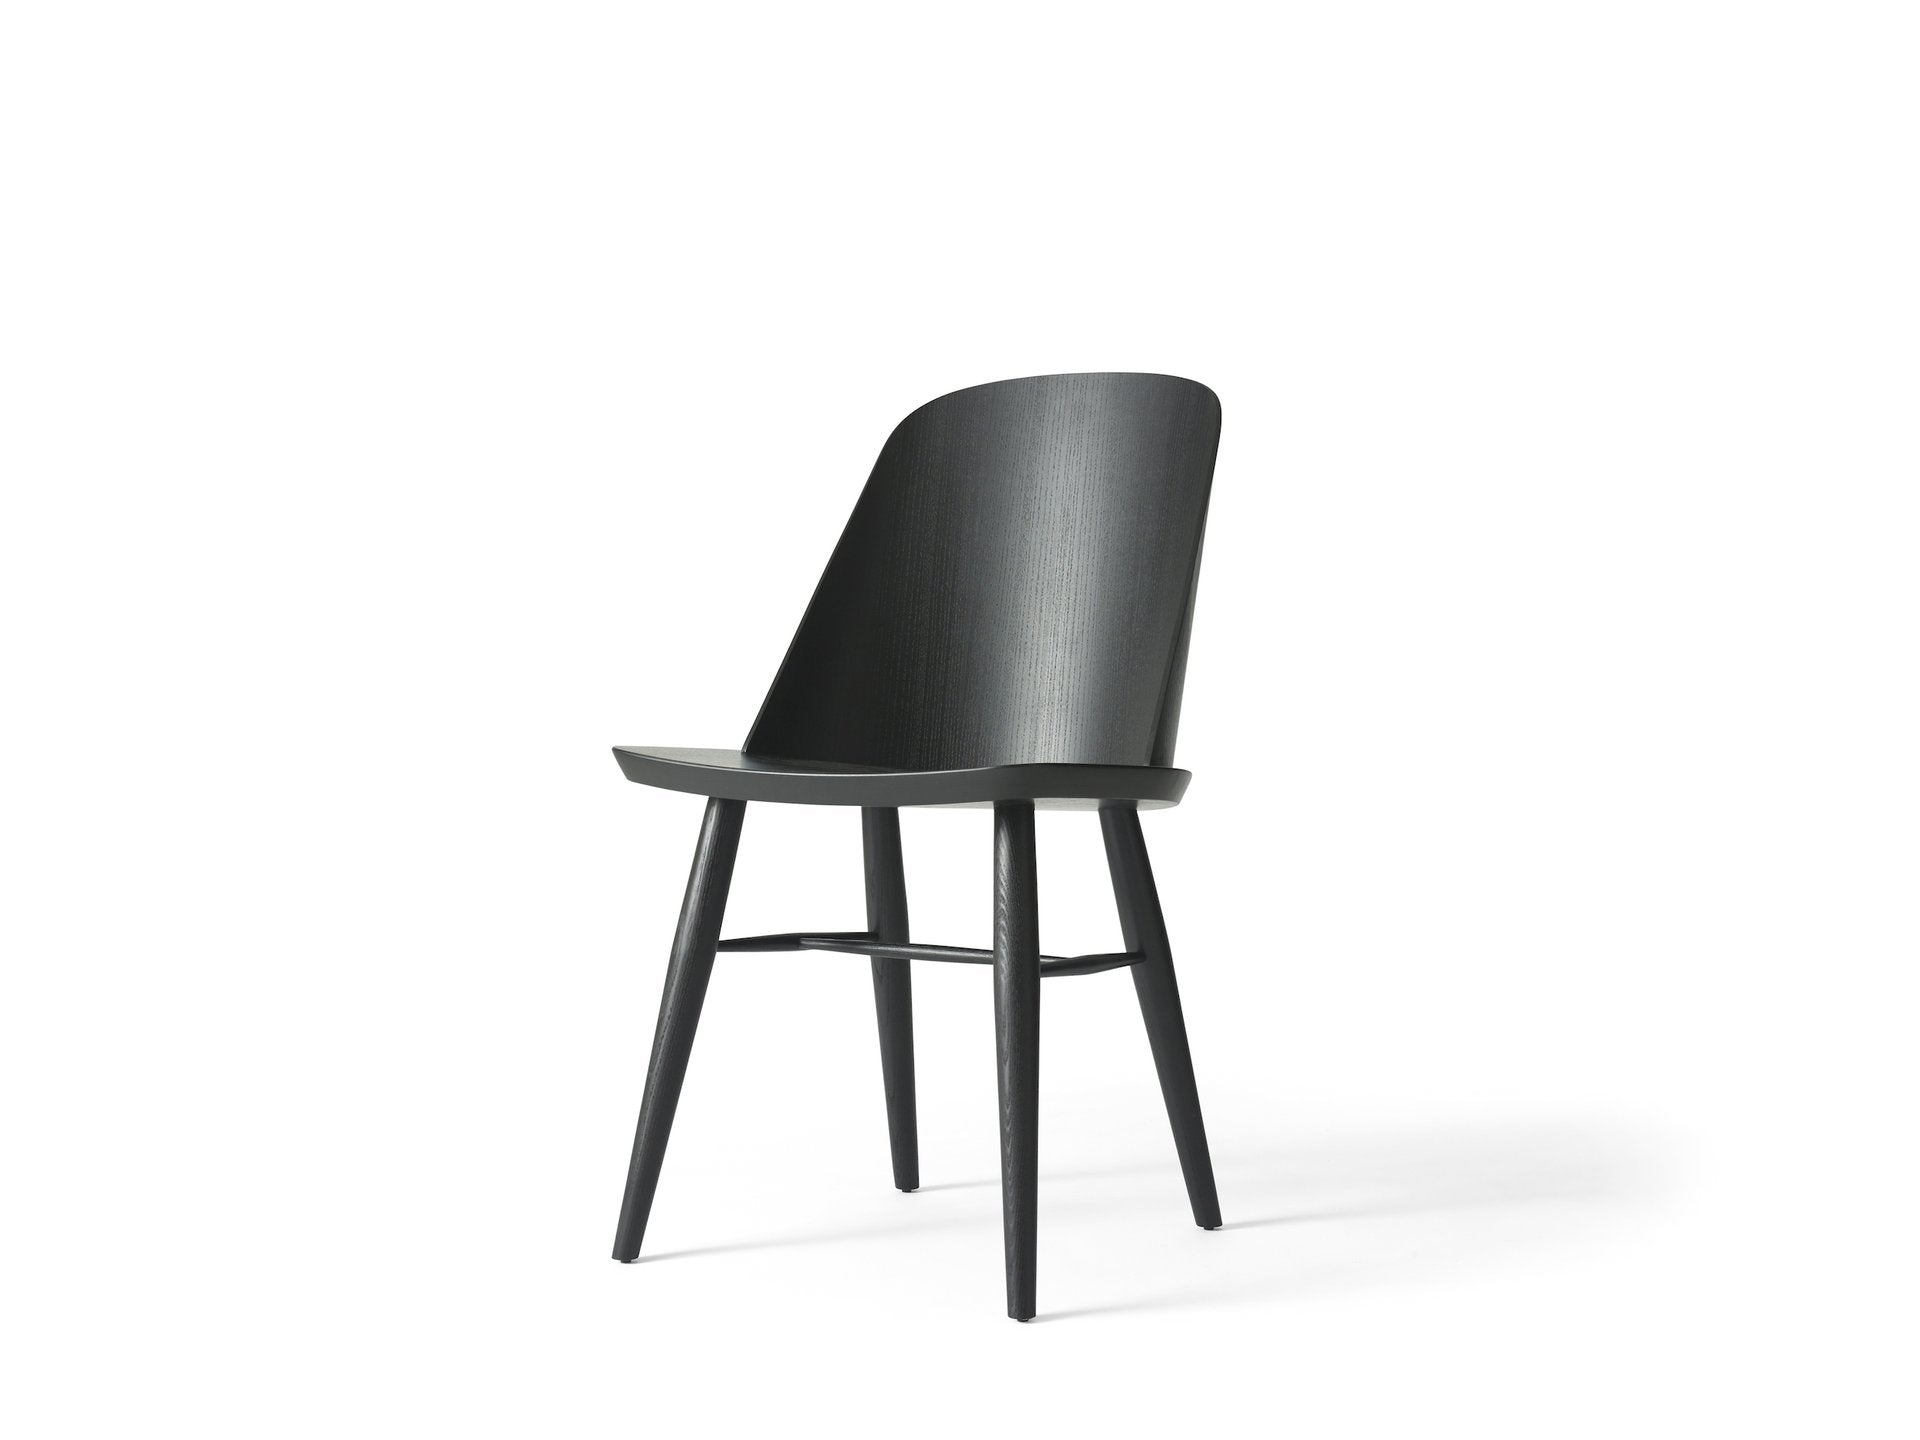 Synnes Chair-Falke Svatun-Menu-Black Ash-danish-interior-furniture-denmark-Average-design-toronto-canada